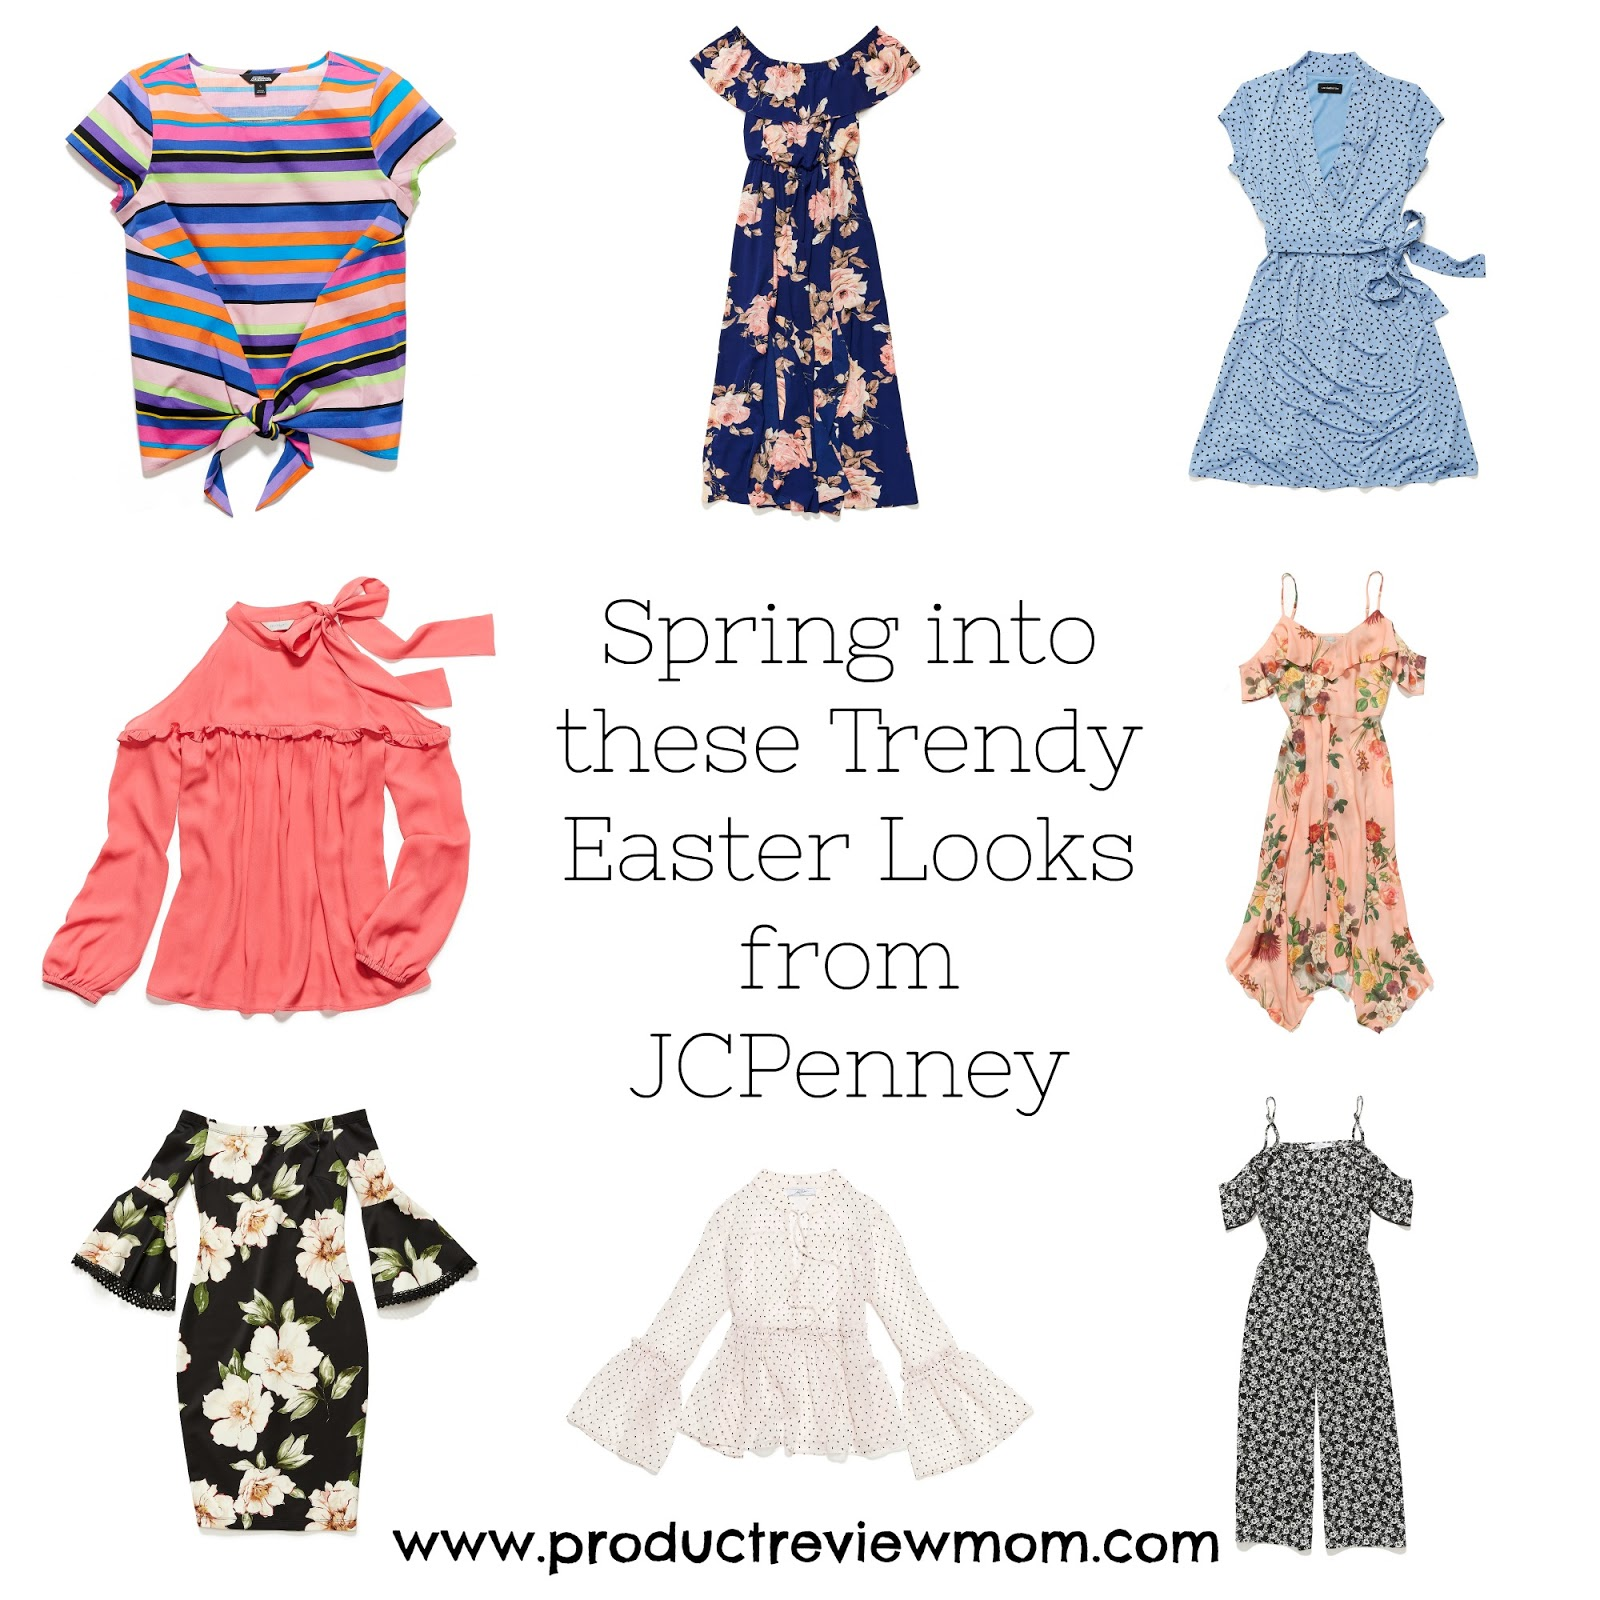 1aa240c035 Spring into these Trendy Easter Looks from JCPenney via  www.productreviewmom.com